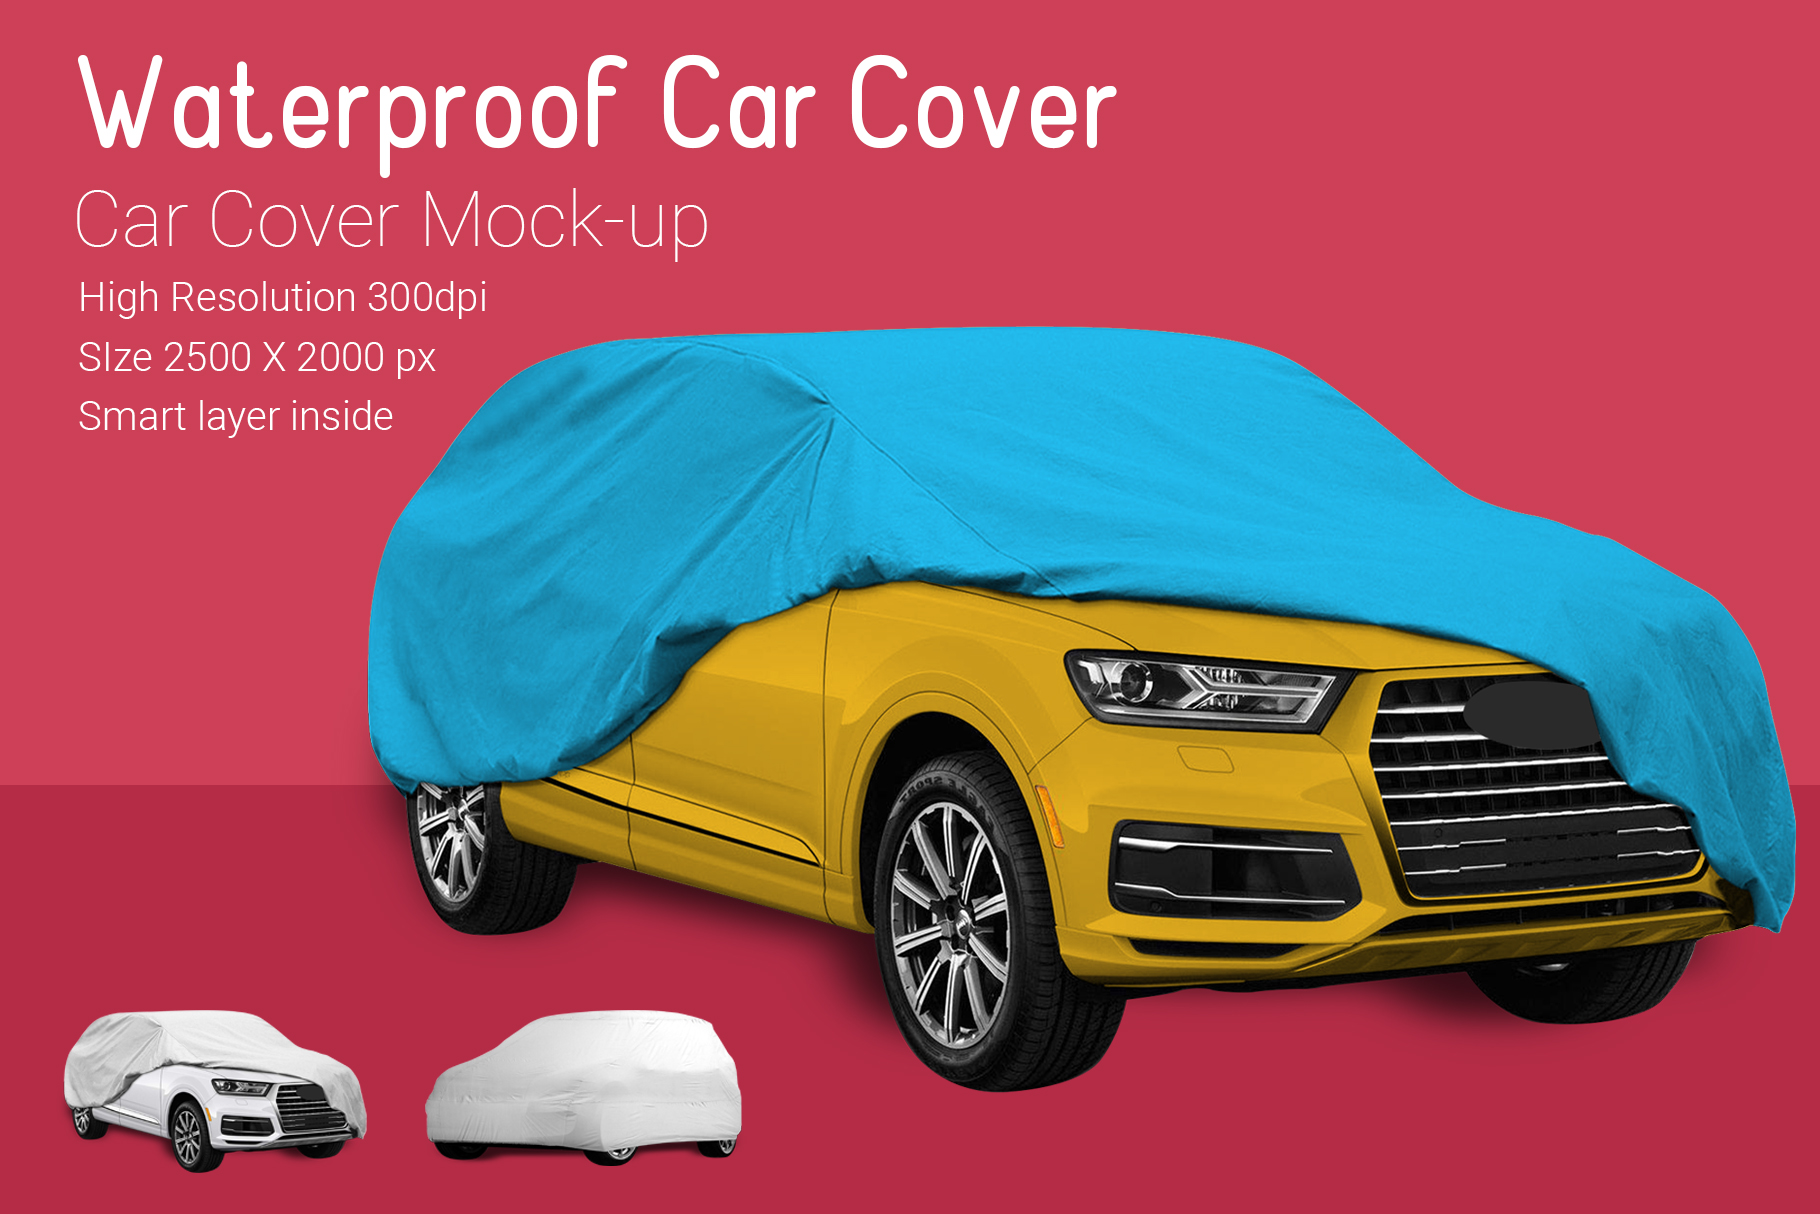 Car Cover Mock-Up example image 6